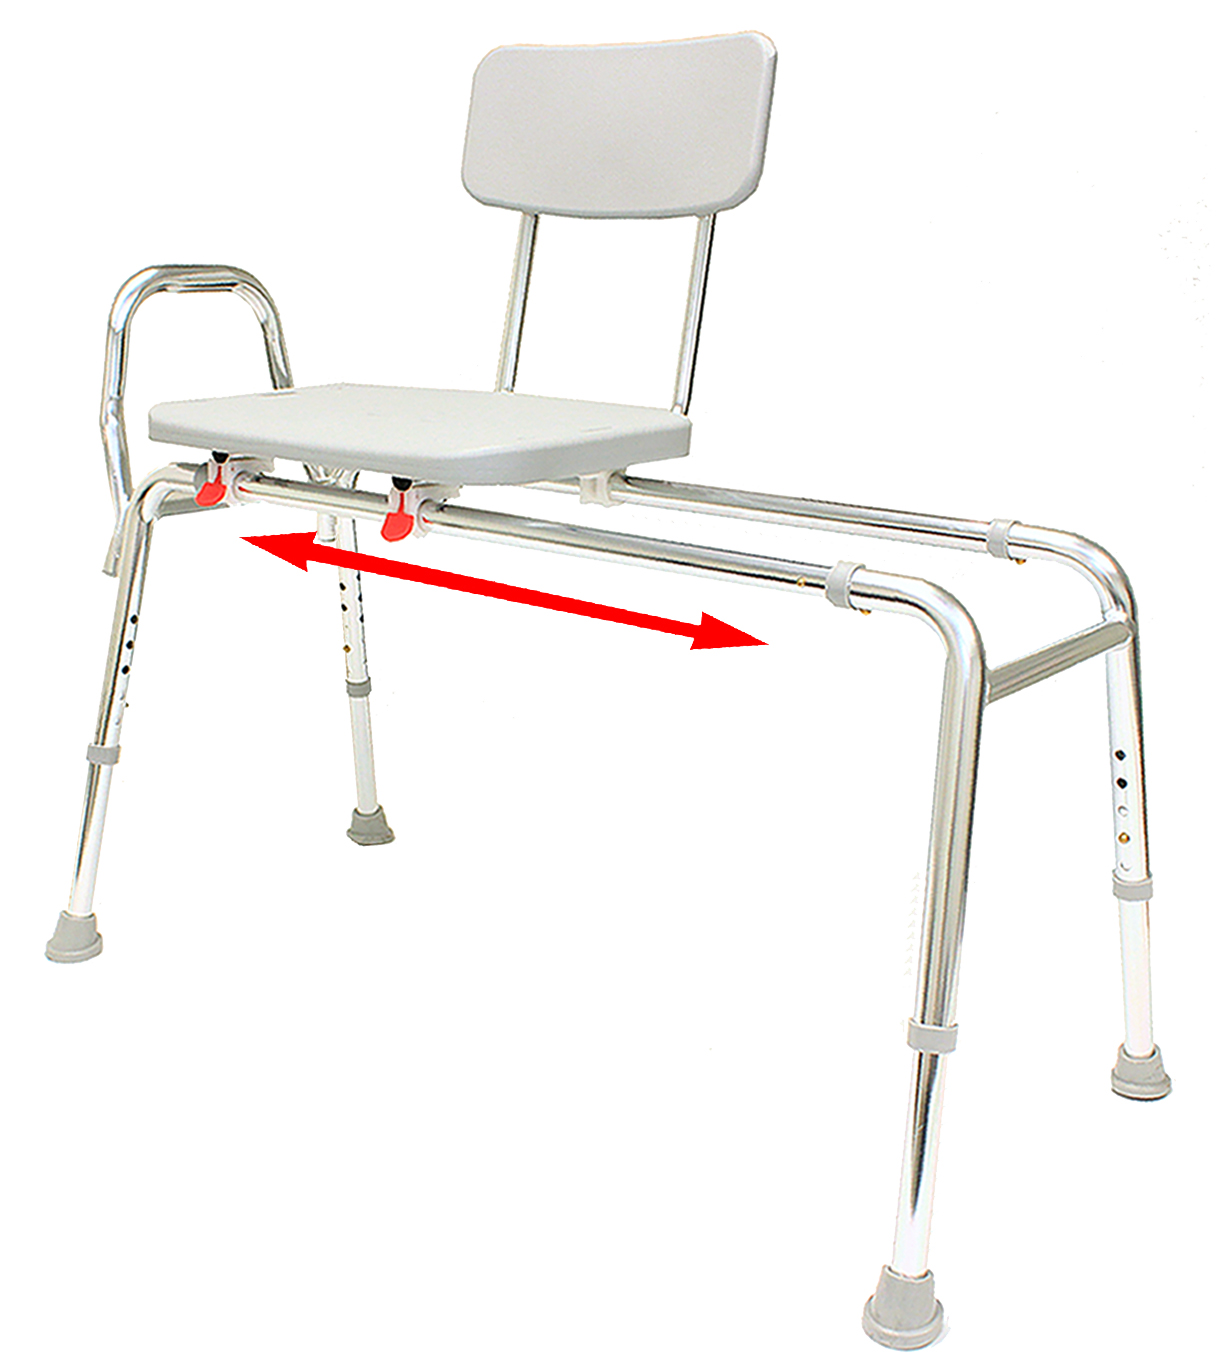 Sliding Transfer Bench - 77211 - Regular